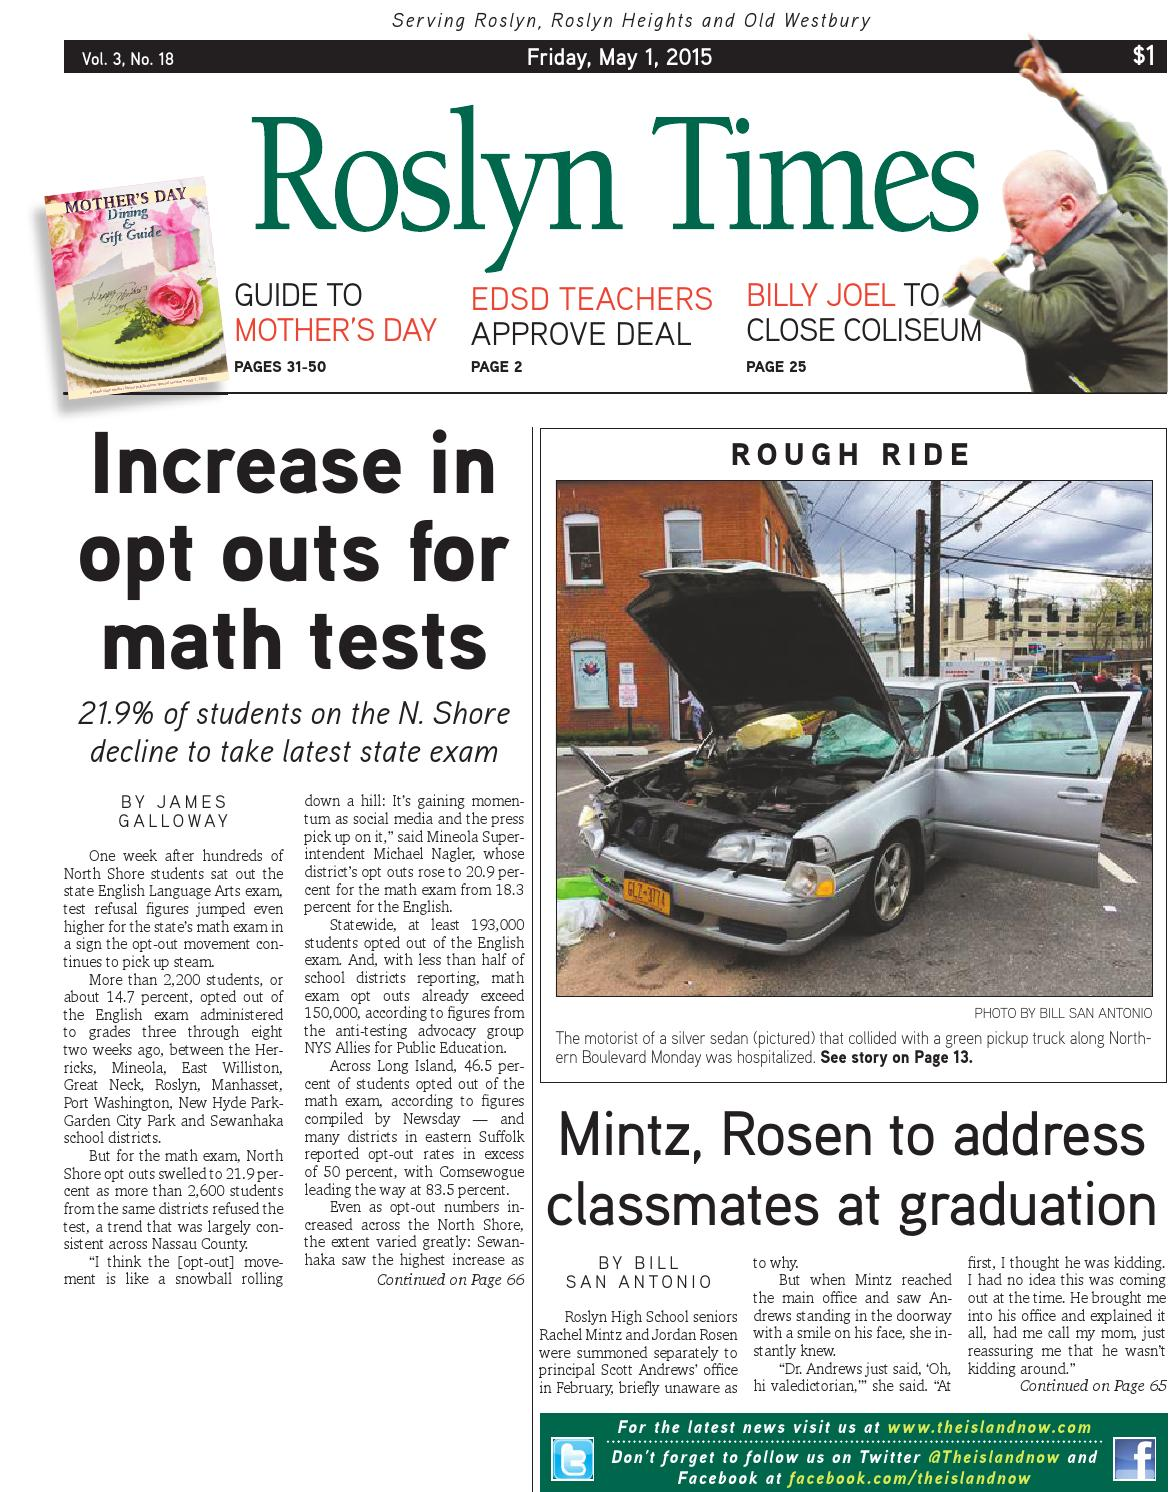 Roslyn Times 5.1.15 by The Island Now - issuu